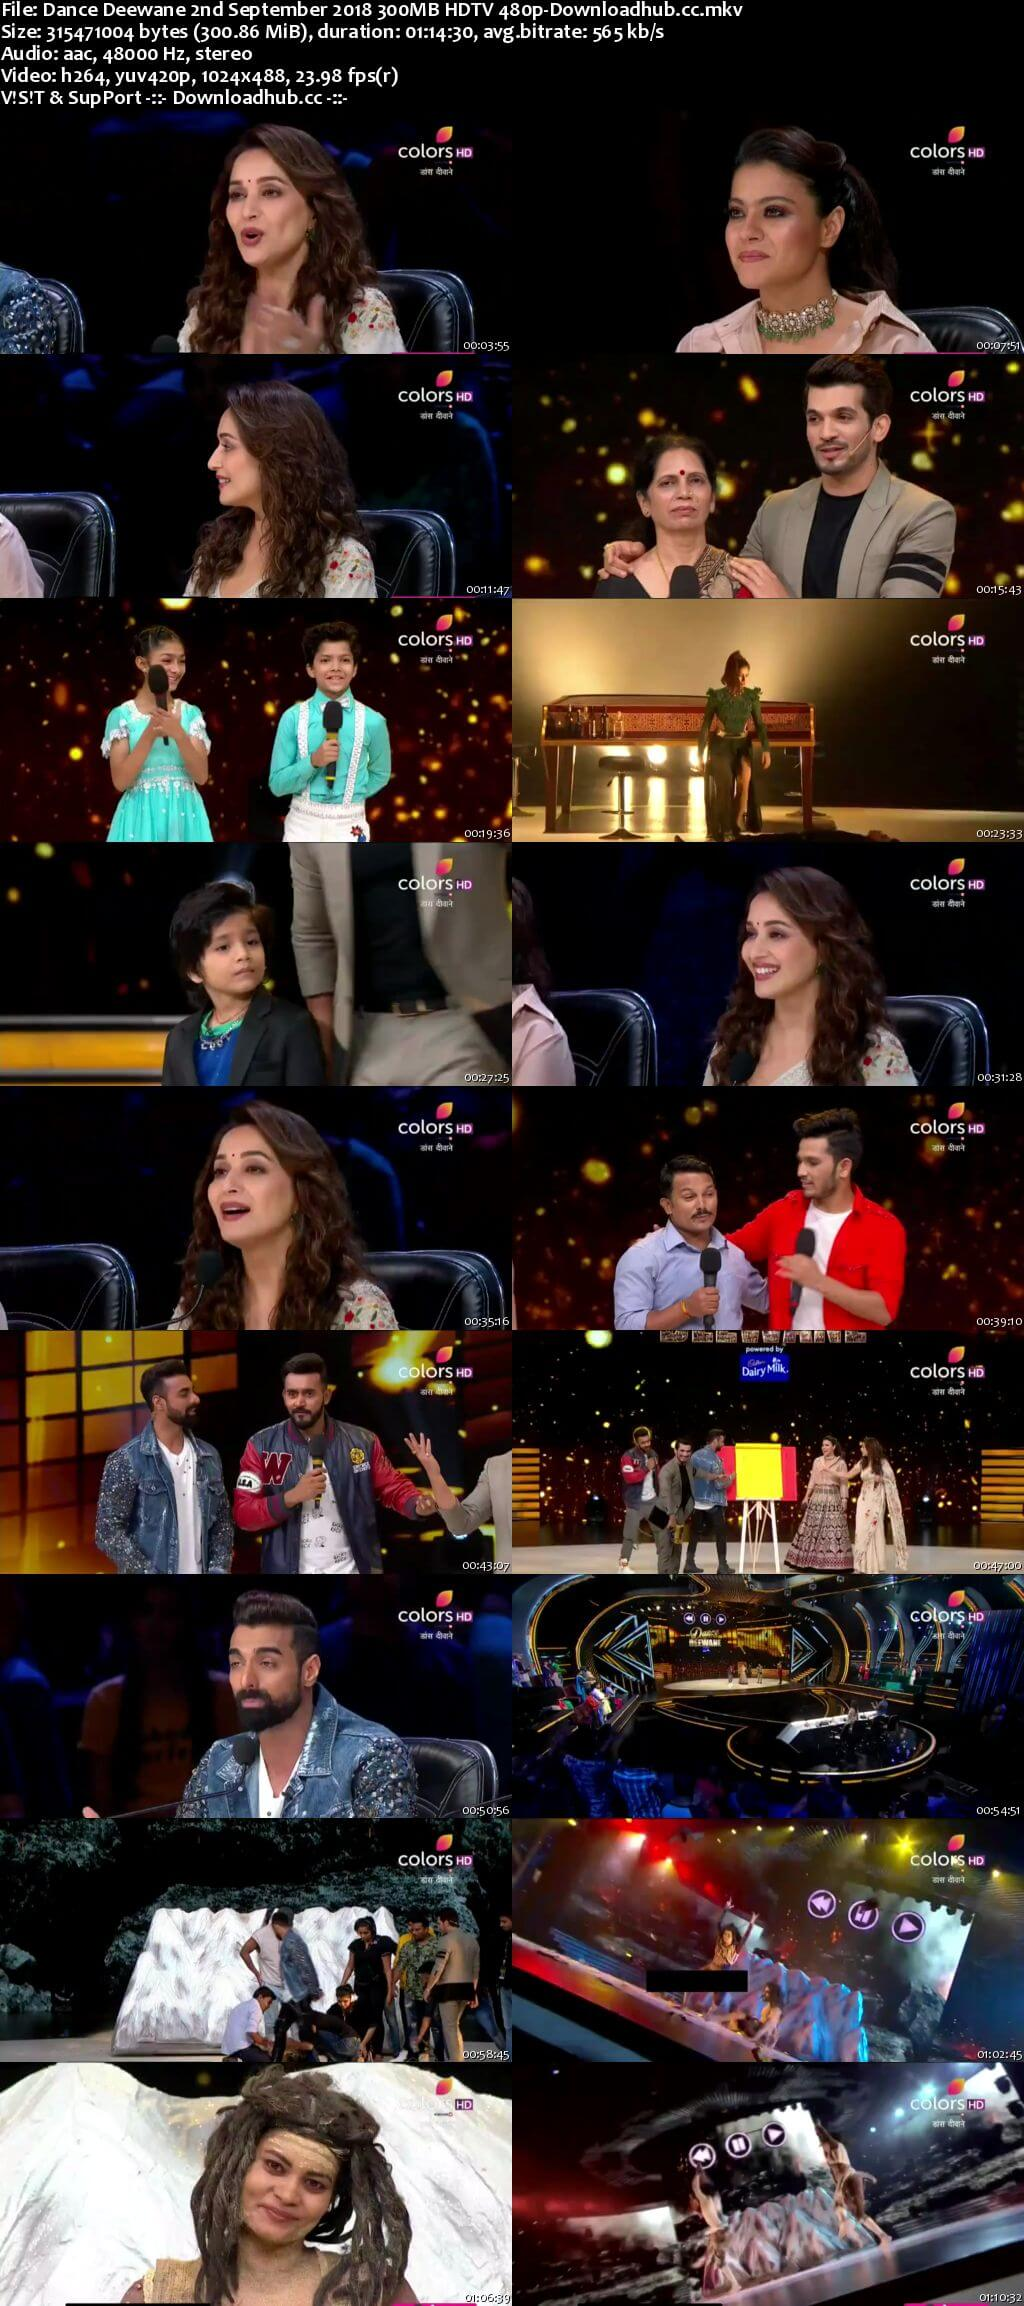 Dance Deewane 02 September 2018 Episode 27 HDTV 480p